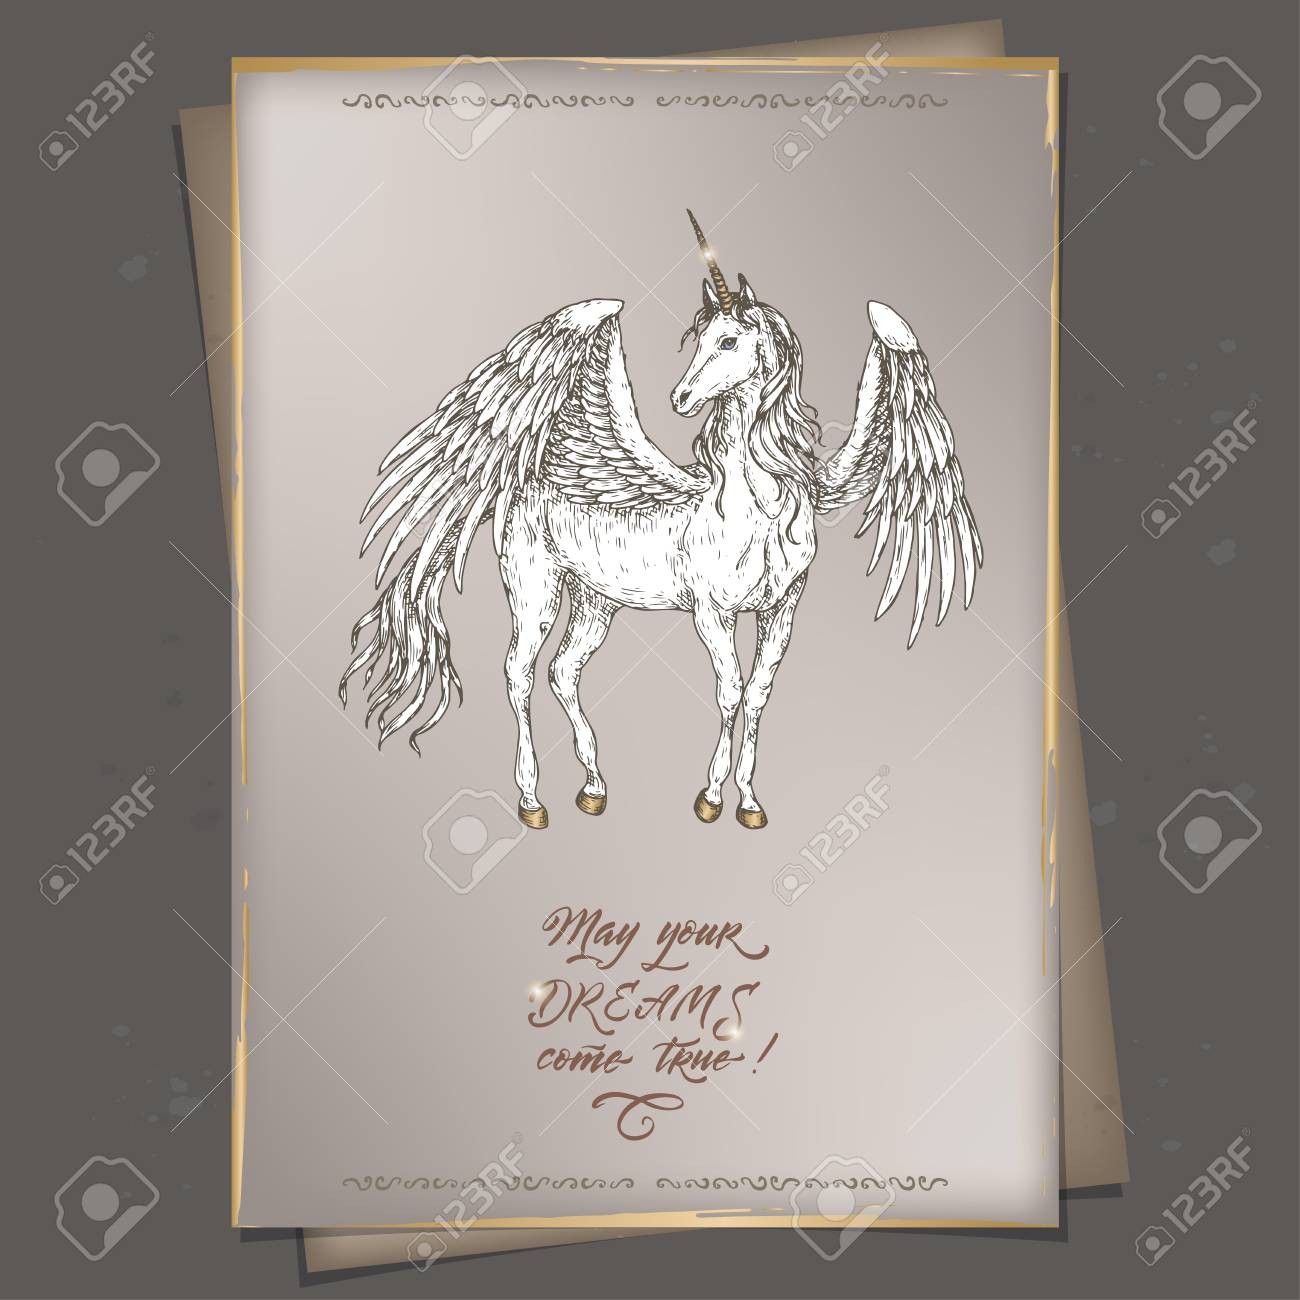 Romantic A4 Format Vintage Birthday Card Template With Calligraphy And Winged Unicorn Sketch Stock Vector